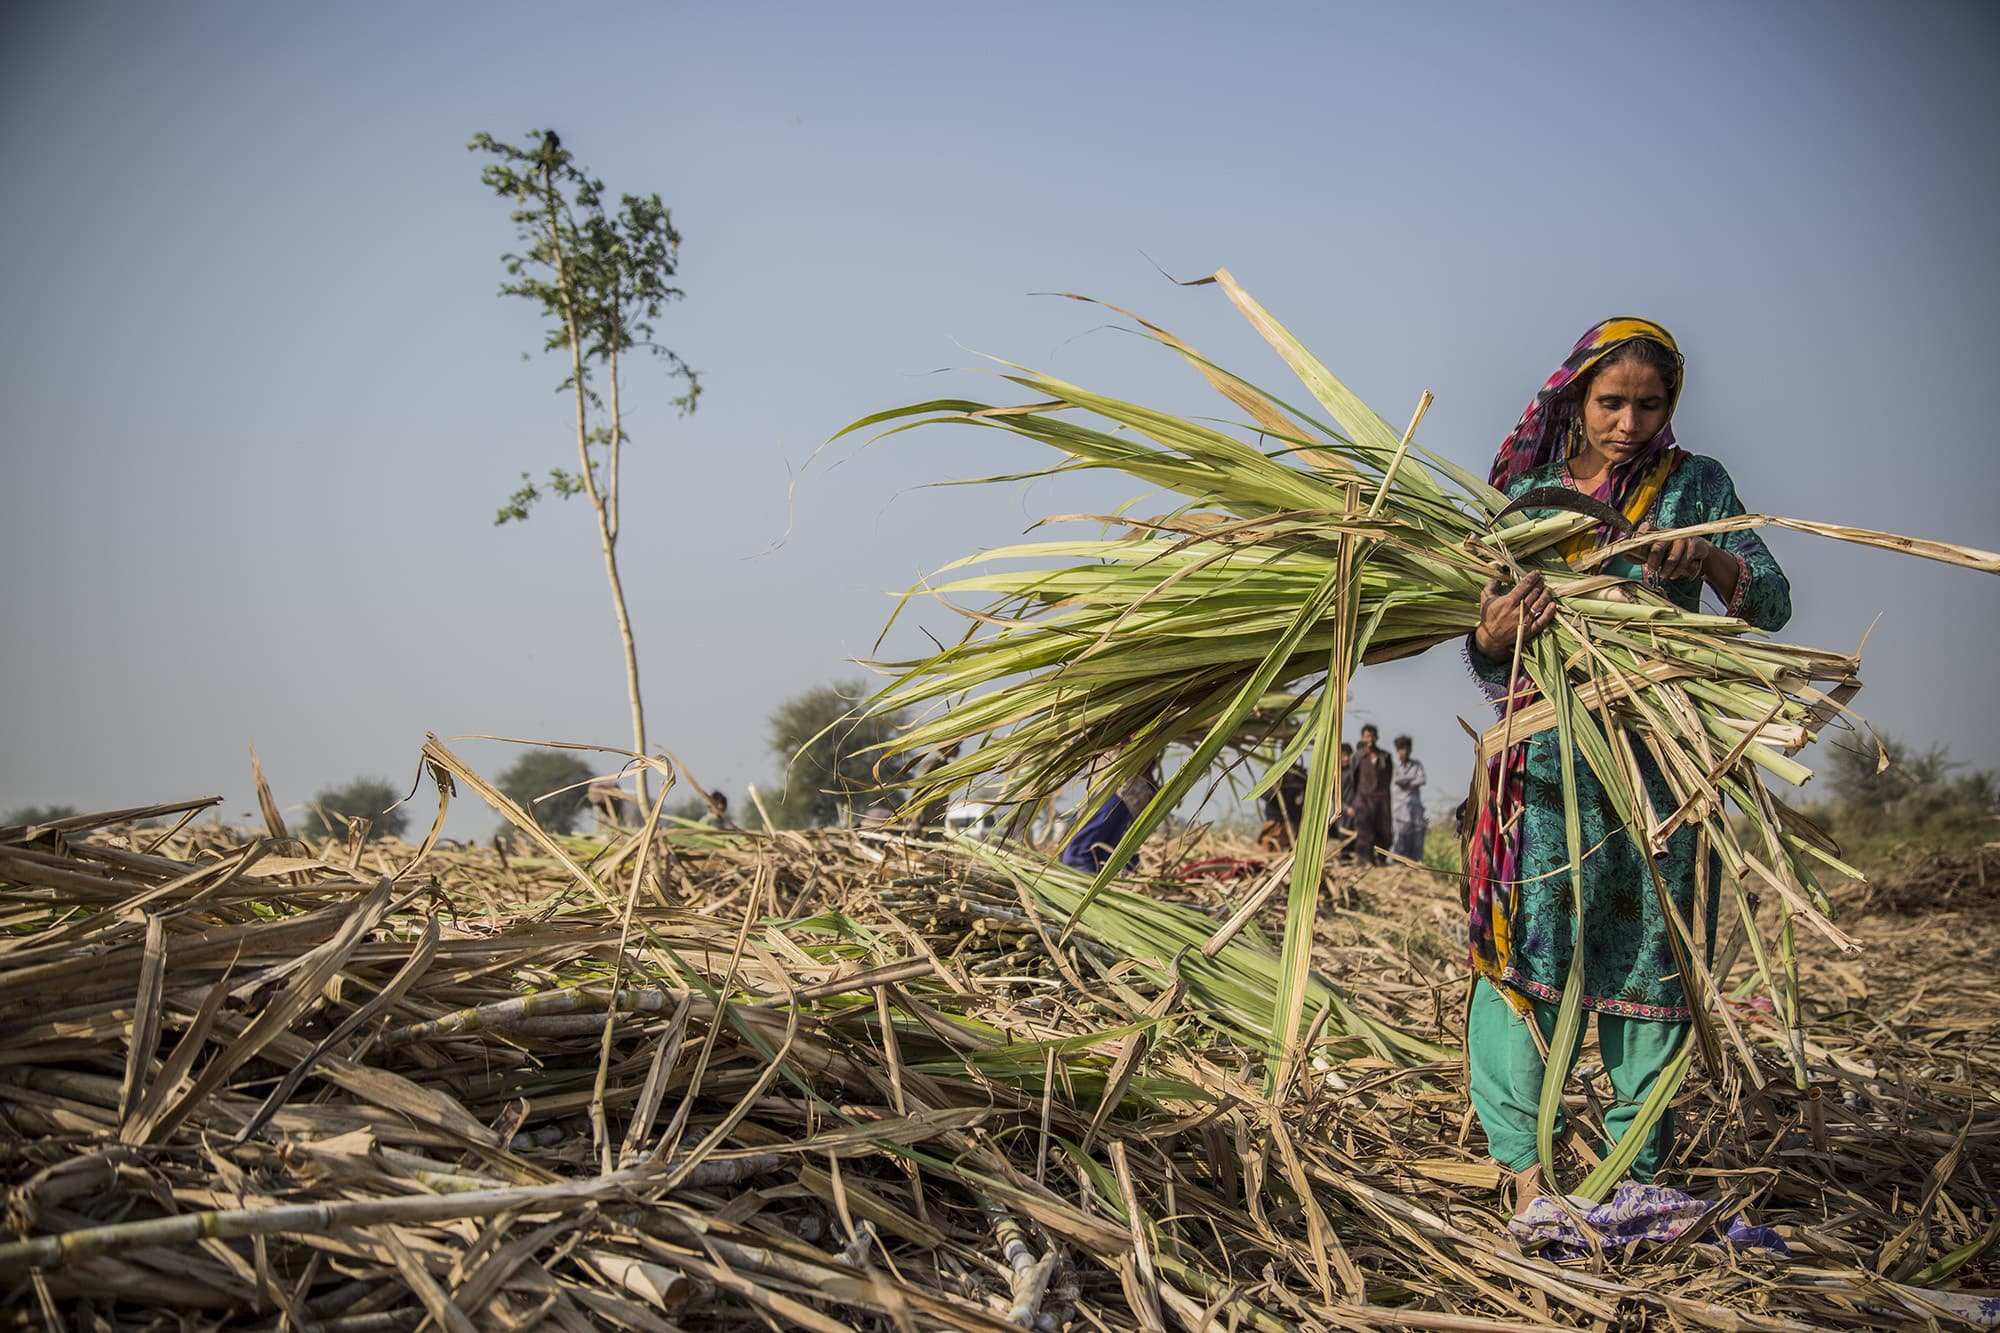 A woman harvesting sugarcane in Badin. - Photo by Shameen Khan